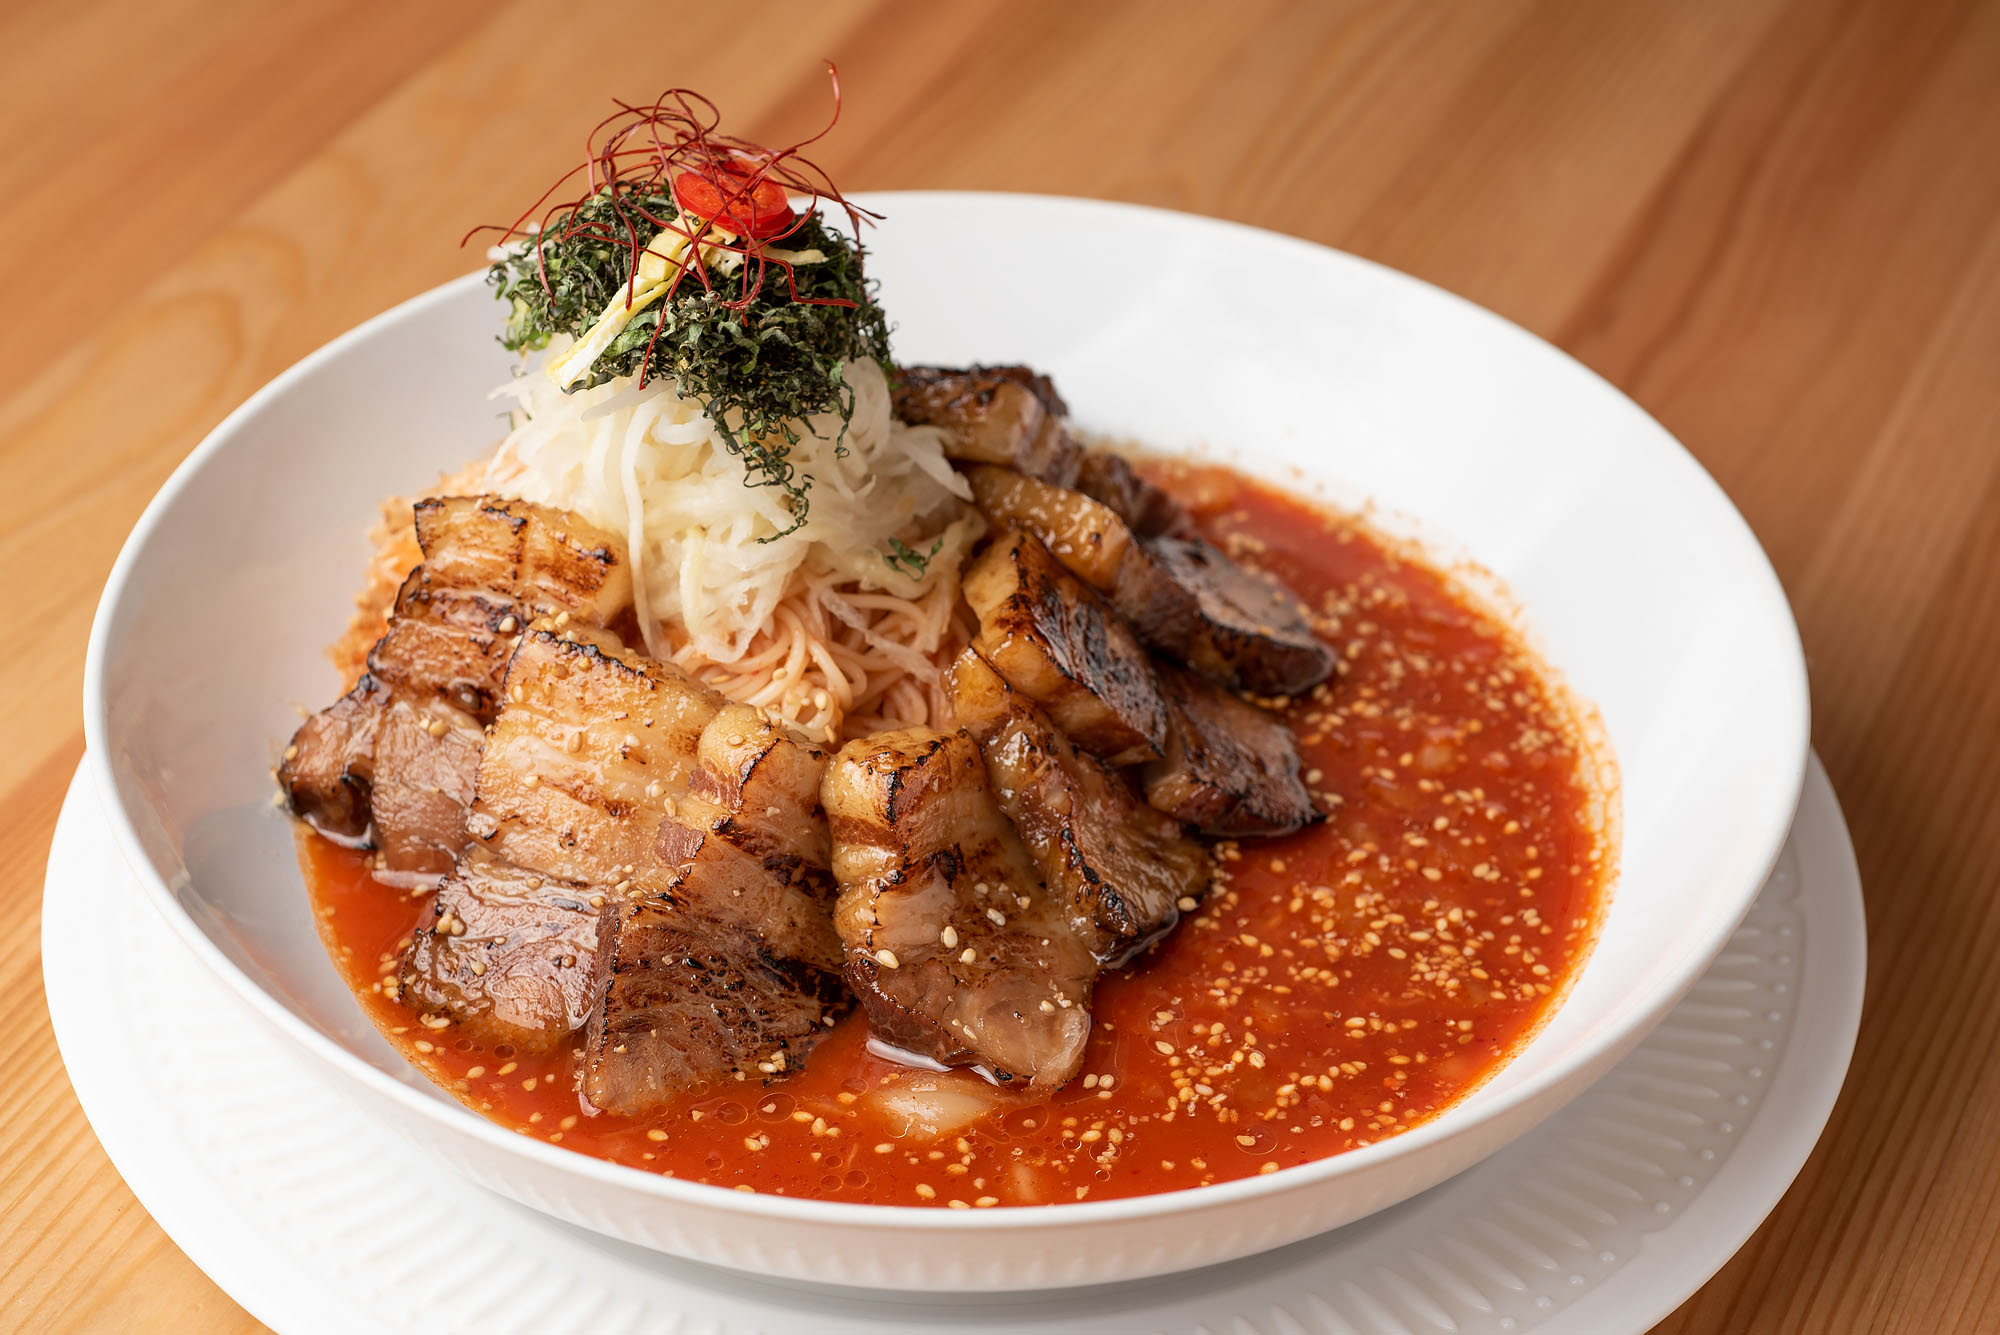 A pork belly dish sitting in bright red sauce in a white bowl.